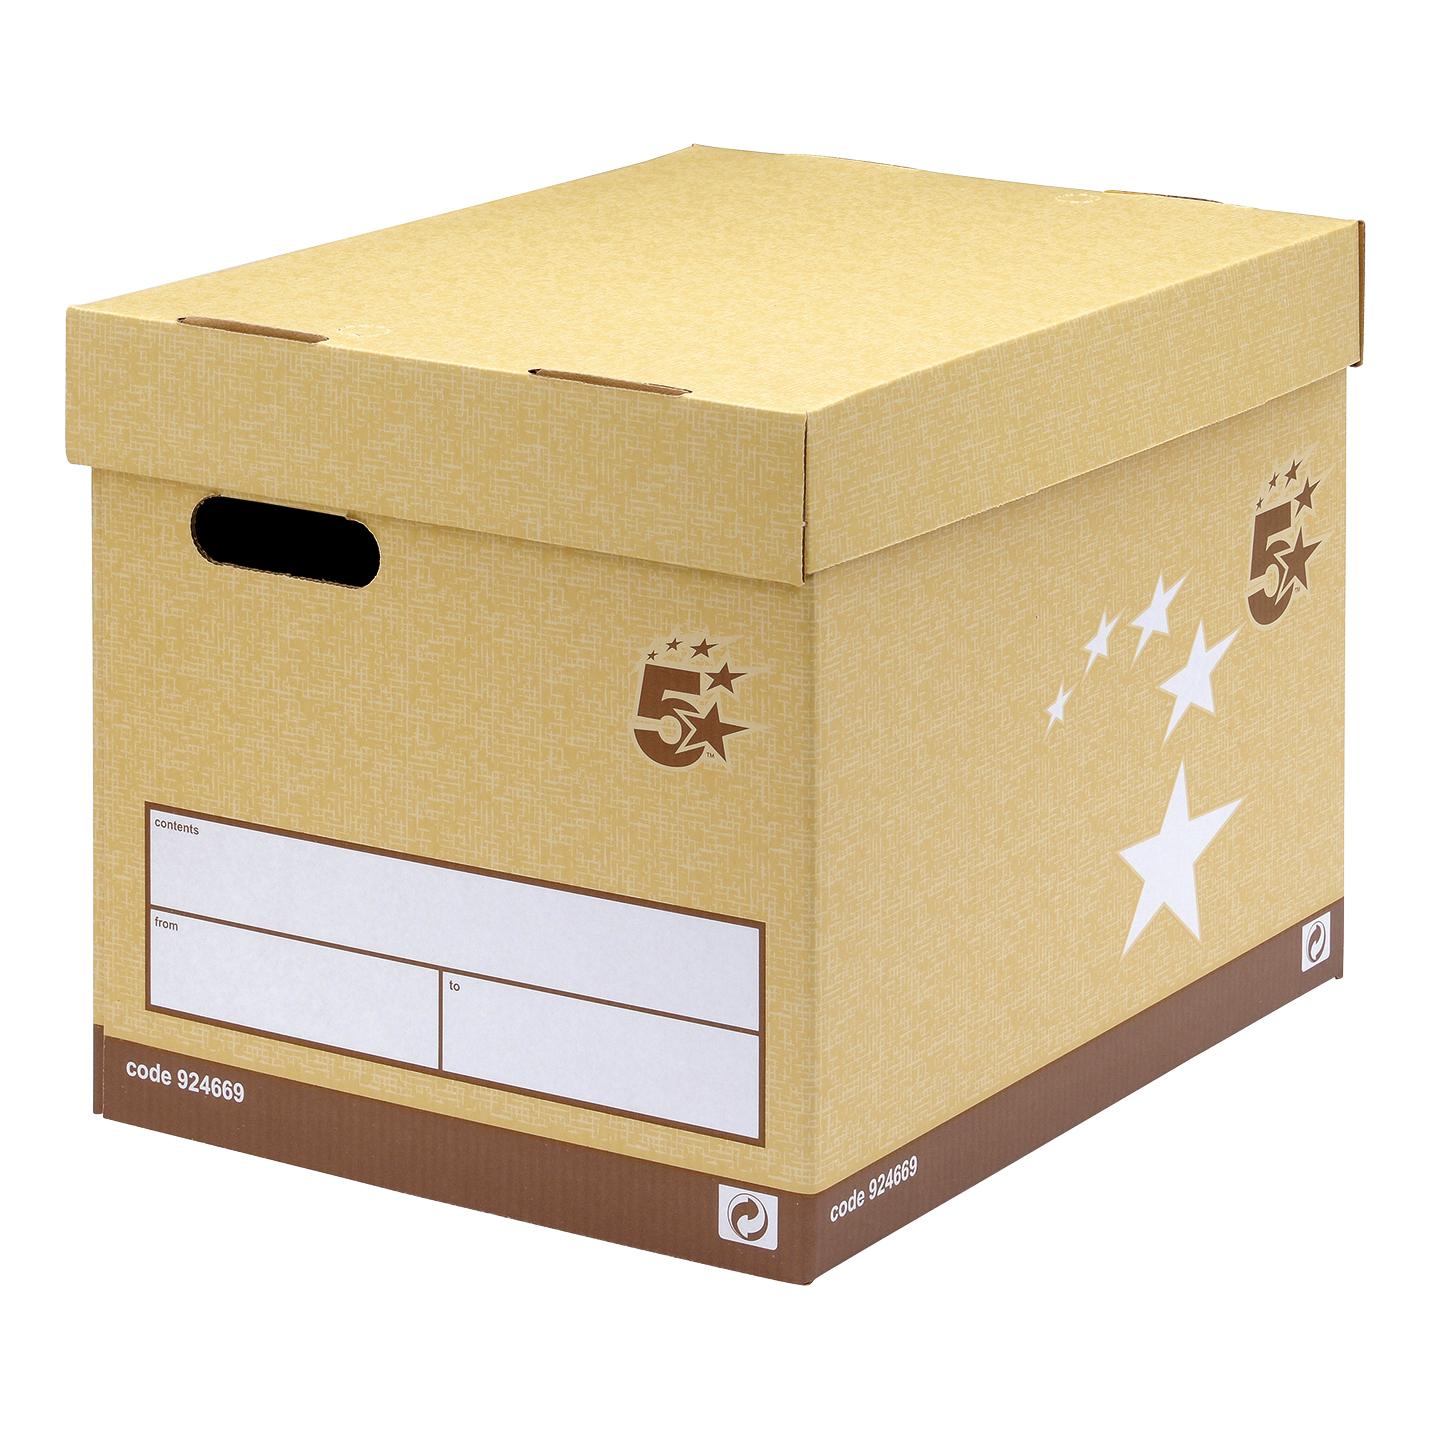 Image for 5 Star Elite Superstrong Archive Storage Box Foolscap Sand FSC [Pack 10]